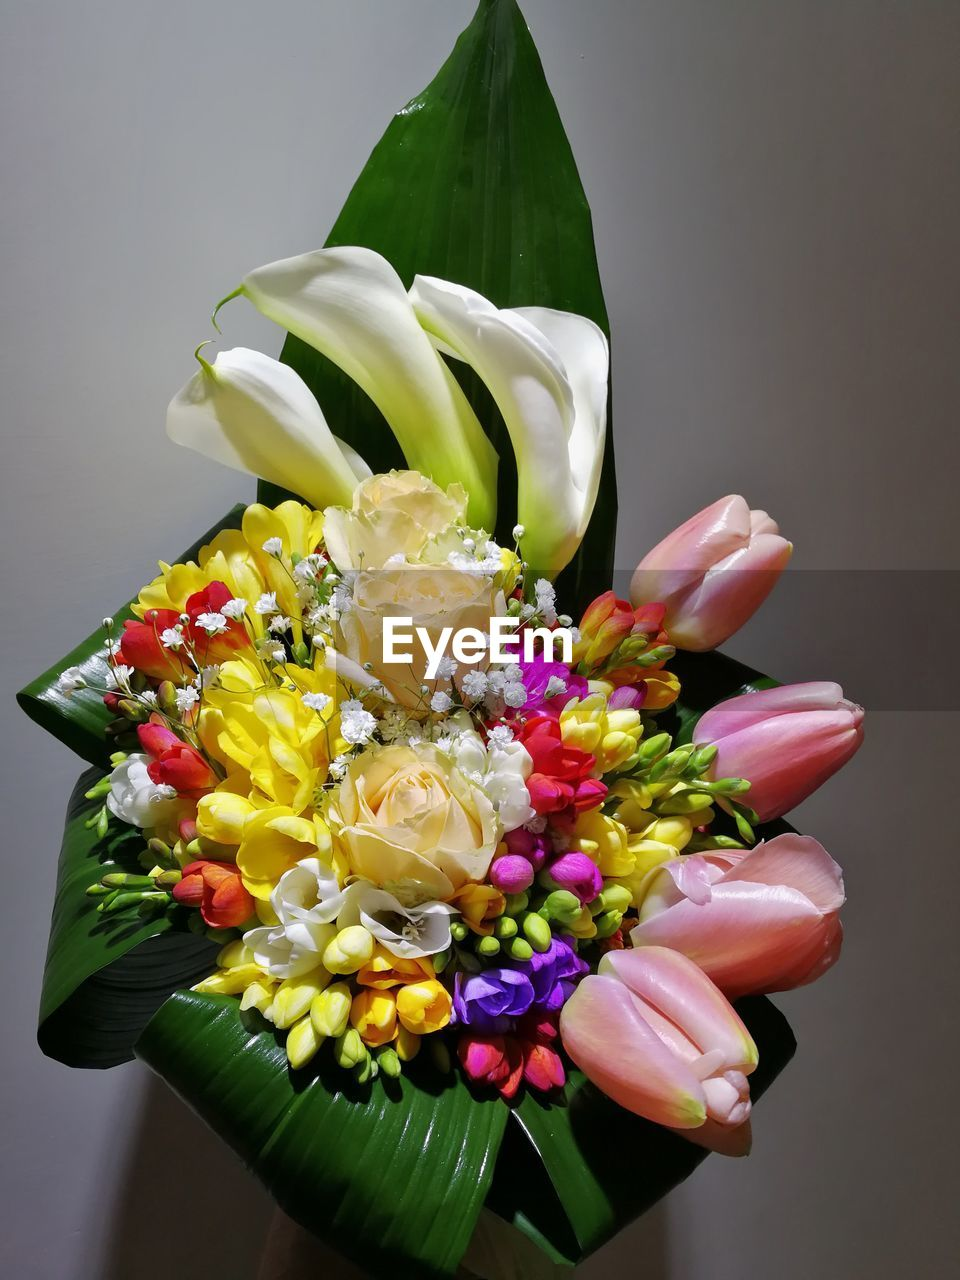 flower, flowering plant, plant, freshness, close-up, vulnerability, indoors, bouquet, beauty in nature, multi colored, fragility, flower arrangement, nature, food and drink, food, flower head, inflorescence, studio shot, petal, choice